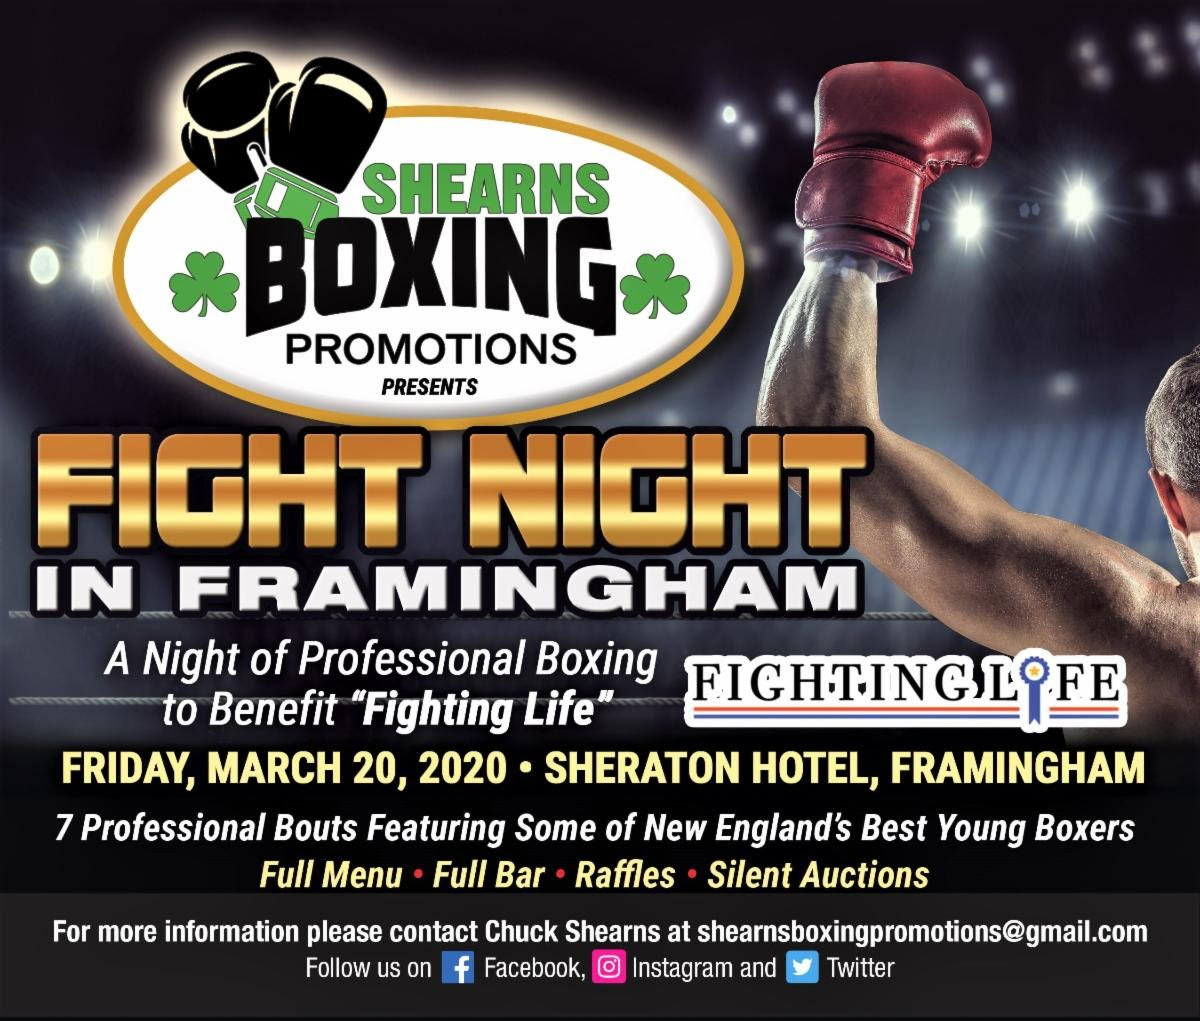 """The long-awaited professional debut of decorated amateur Angel Gonzalez, Jr. will take place Friday night, March 20, on the """"Fight Night In Framingham"""" card, presented by Shearns Boxing Promotions (SBP), at Sheraton Framingham Hotel in Framingham, Massachusetts."""